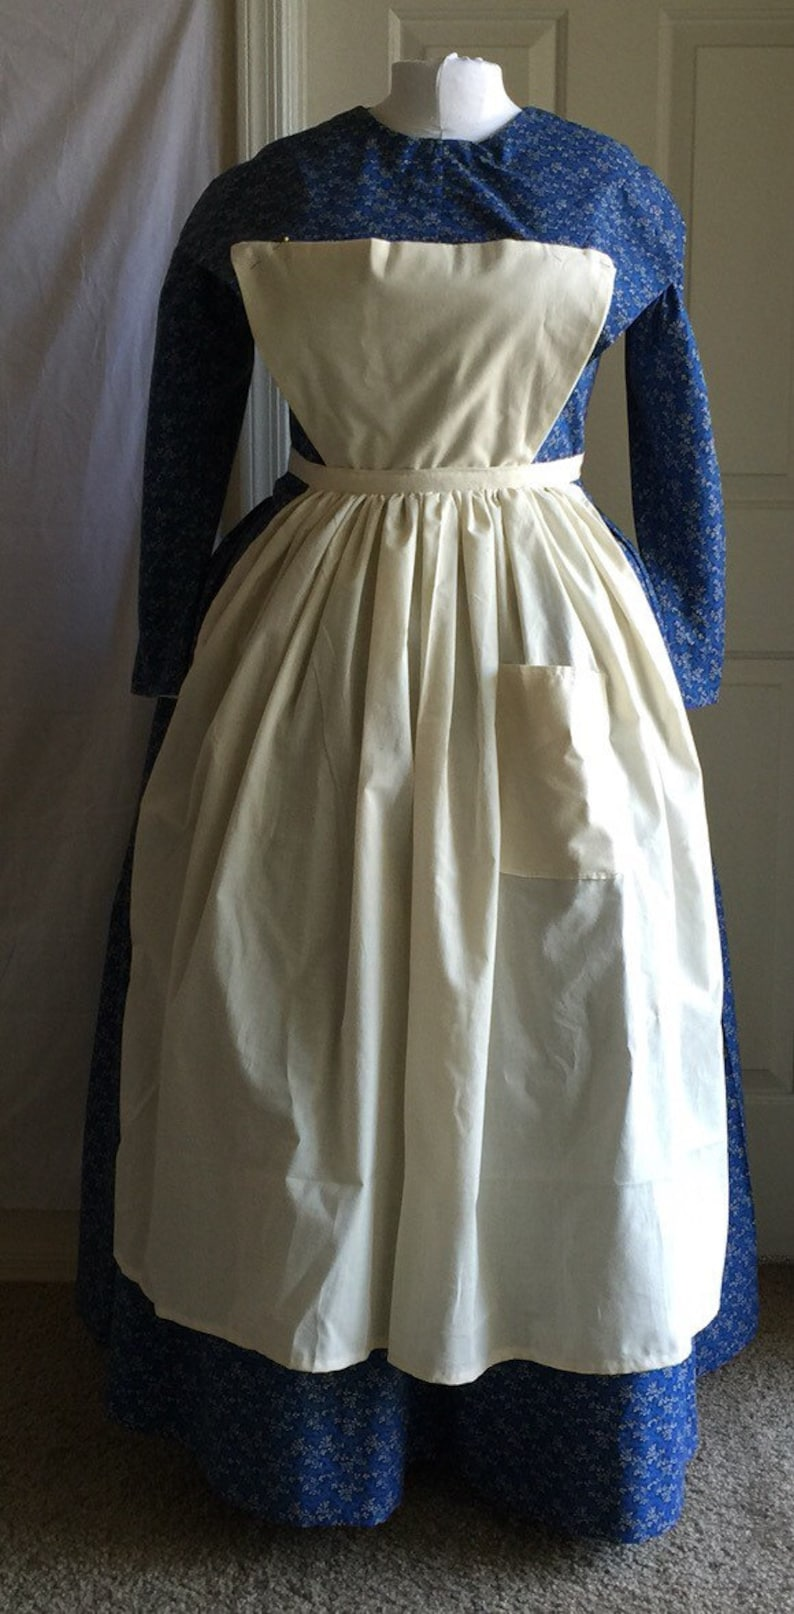 Vintage Aprons, Retro Aprons, Old Fashioned Aprons & Patterns Victorian Wild West Pinned Apron Pinafore Civil War Southern Belle Housemaid Downton Abby Scullery Maid Reenact $30.00 AT vintagedancer.com